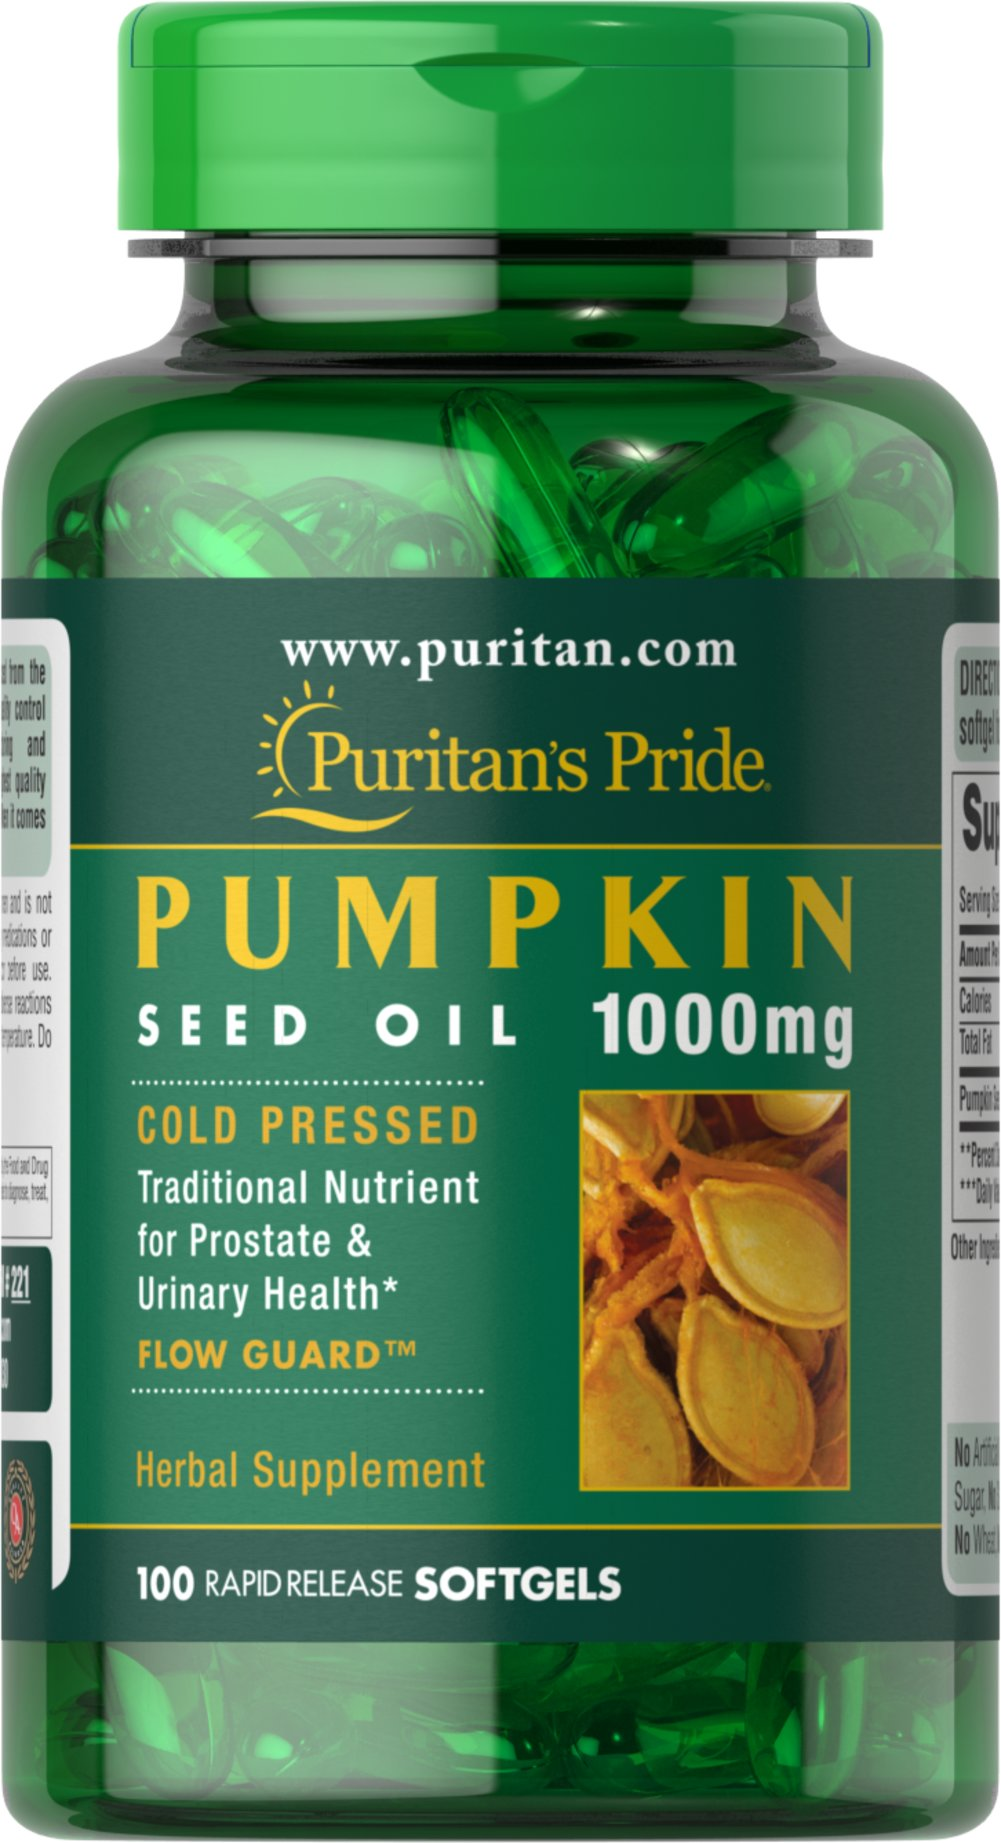 Pumpkin Seed Oil 1000 mg <p>Enjoy pure, cold-pressed pumpkin seed oil in easier-to-swallow softgels. Pumpkin seeds contain nutitional properties such as vitamins and trace minerals.</p><p></p><p></p><p></p> 100 Softgels 1000 mg $10.29